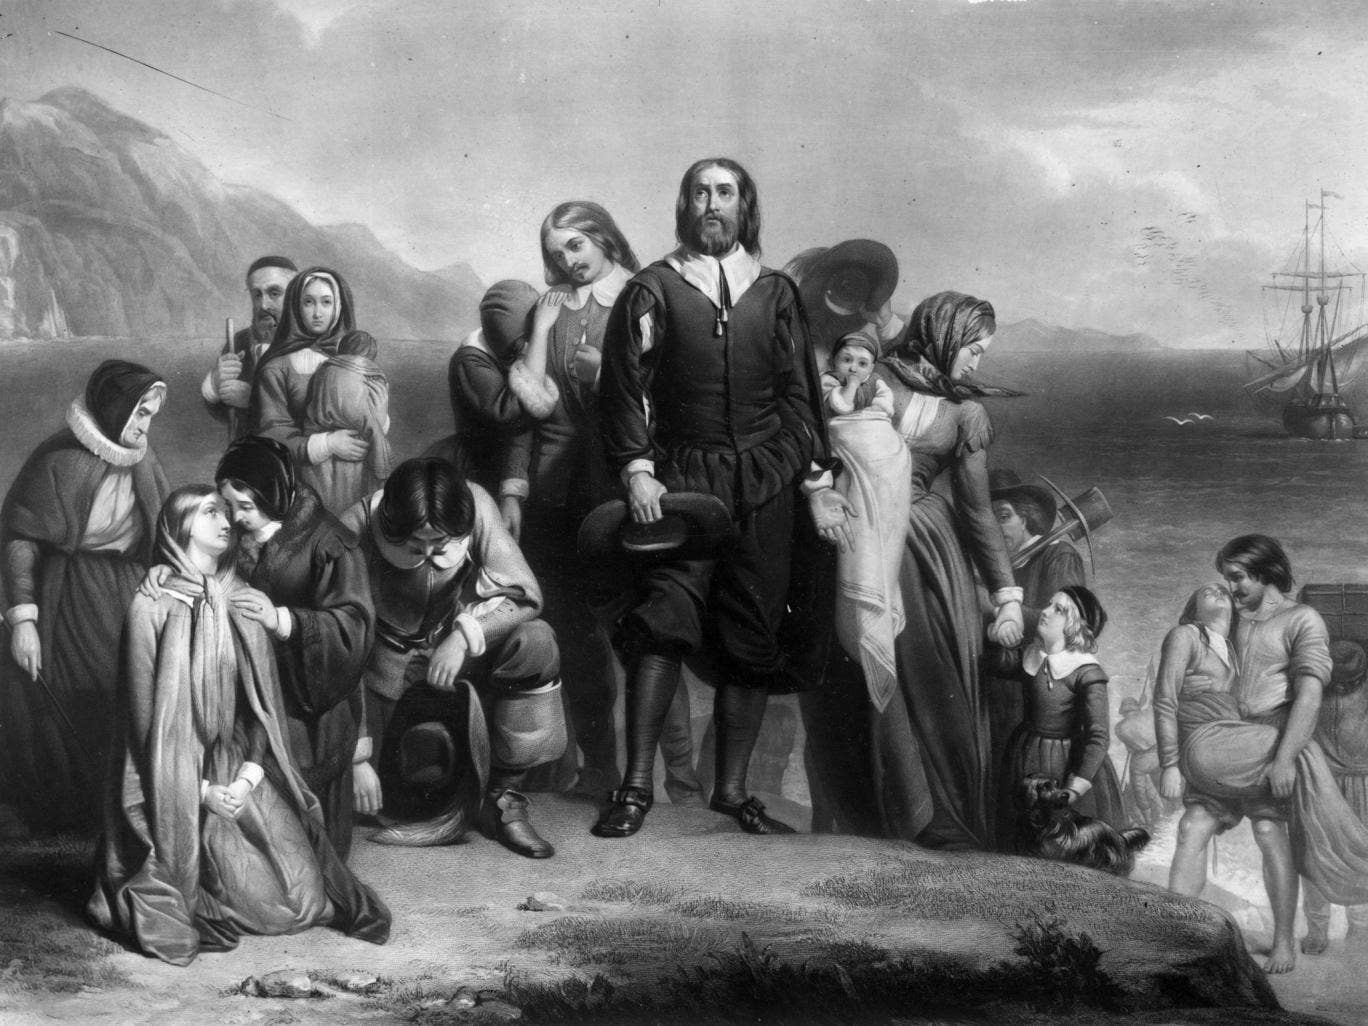 19th November 1620, The Pilgrim Fathers arriving on the Mayflower and landing in New England, where they founded the Plymouth Colony